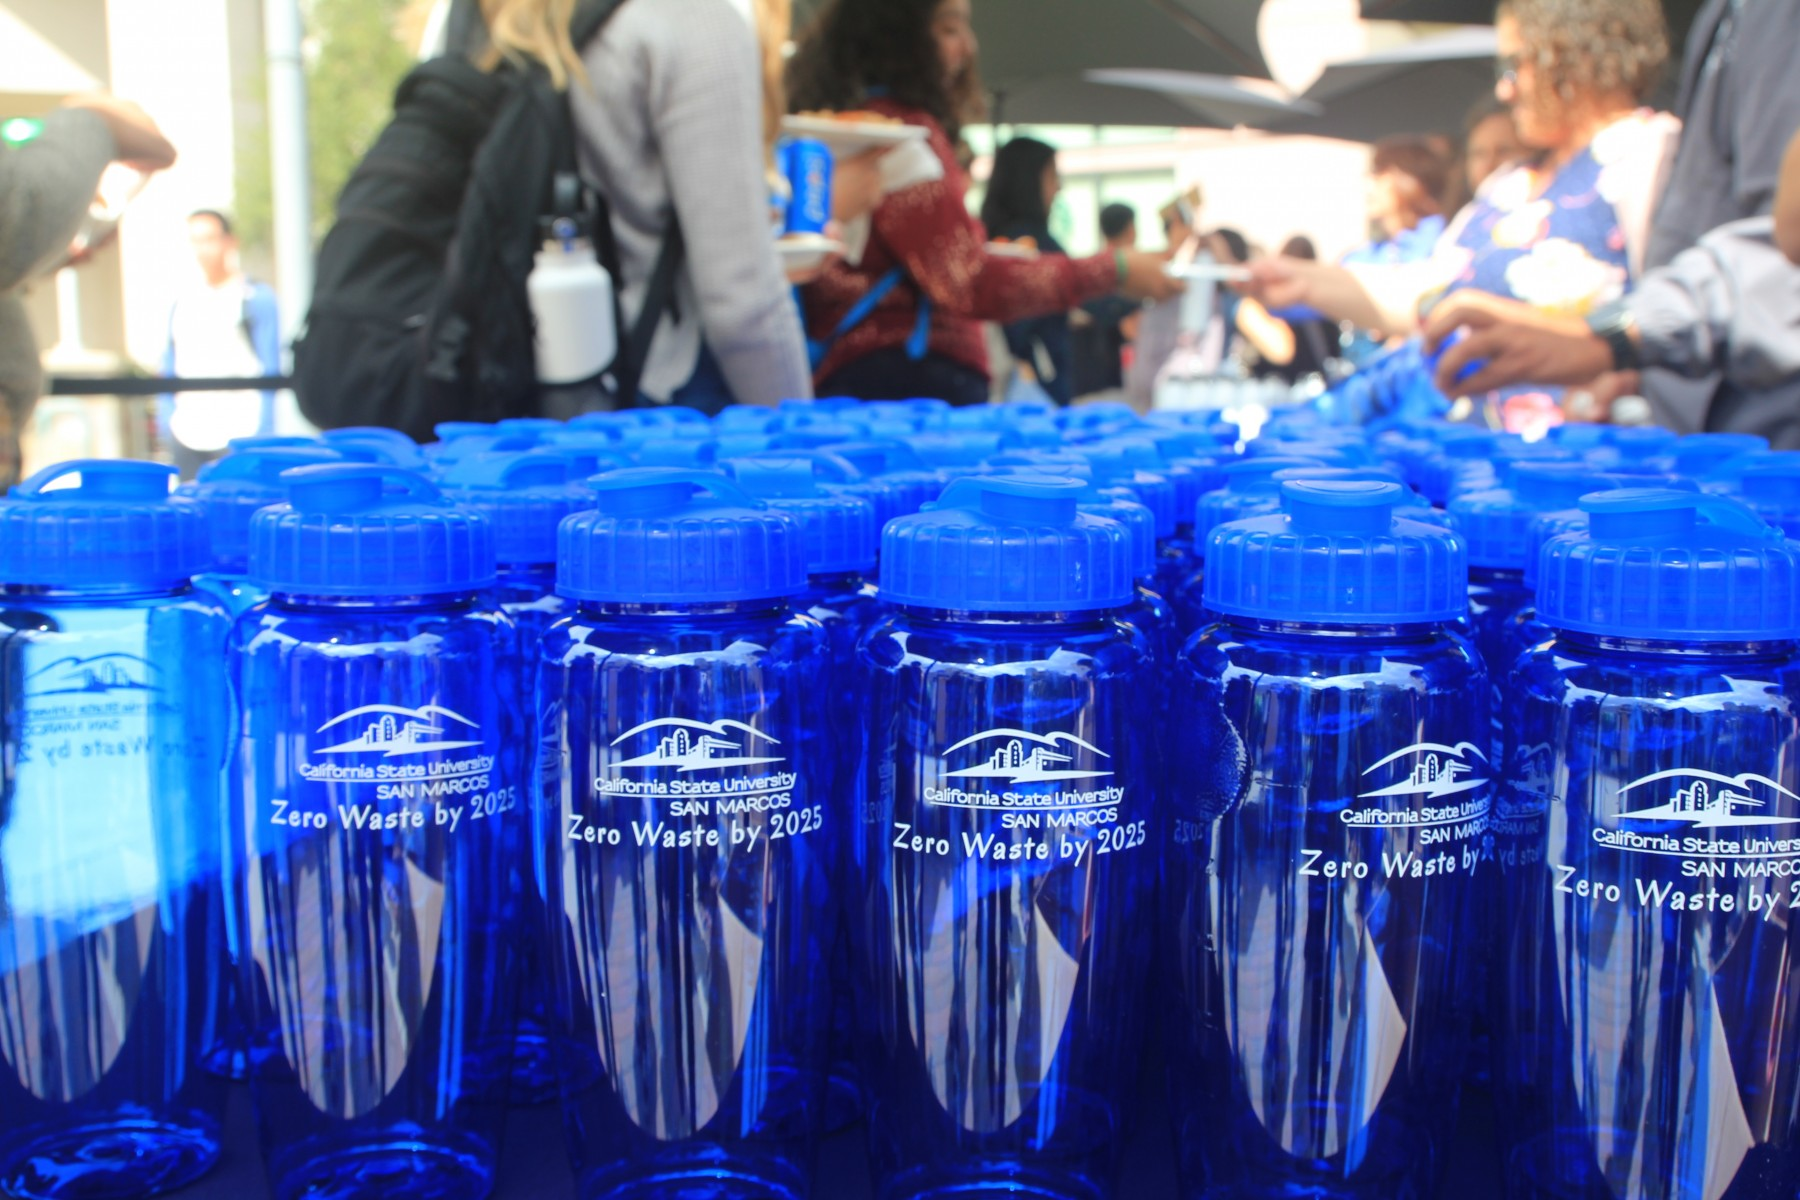 Reusable water bottles are on display during the Journey to Zero Waste event in 2018.